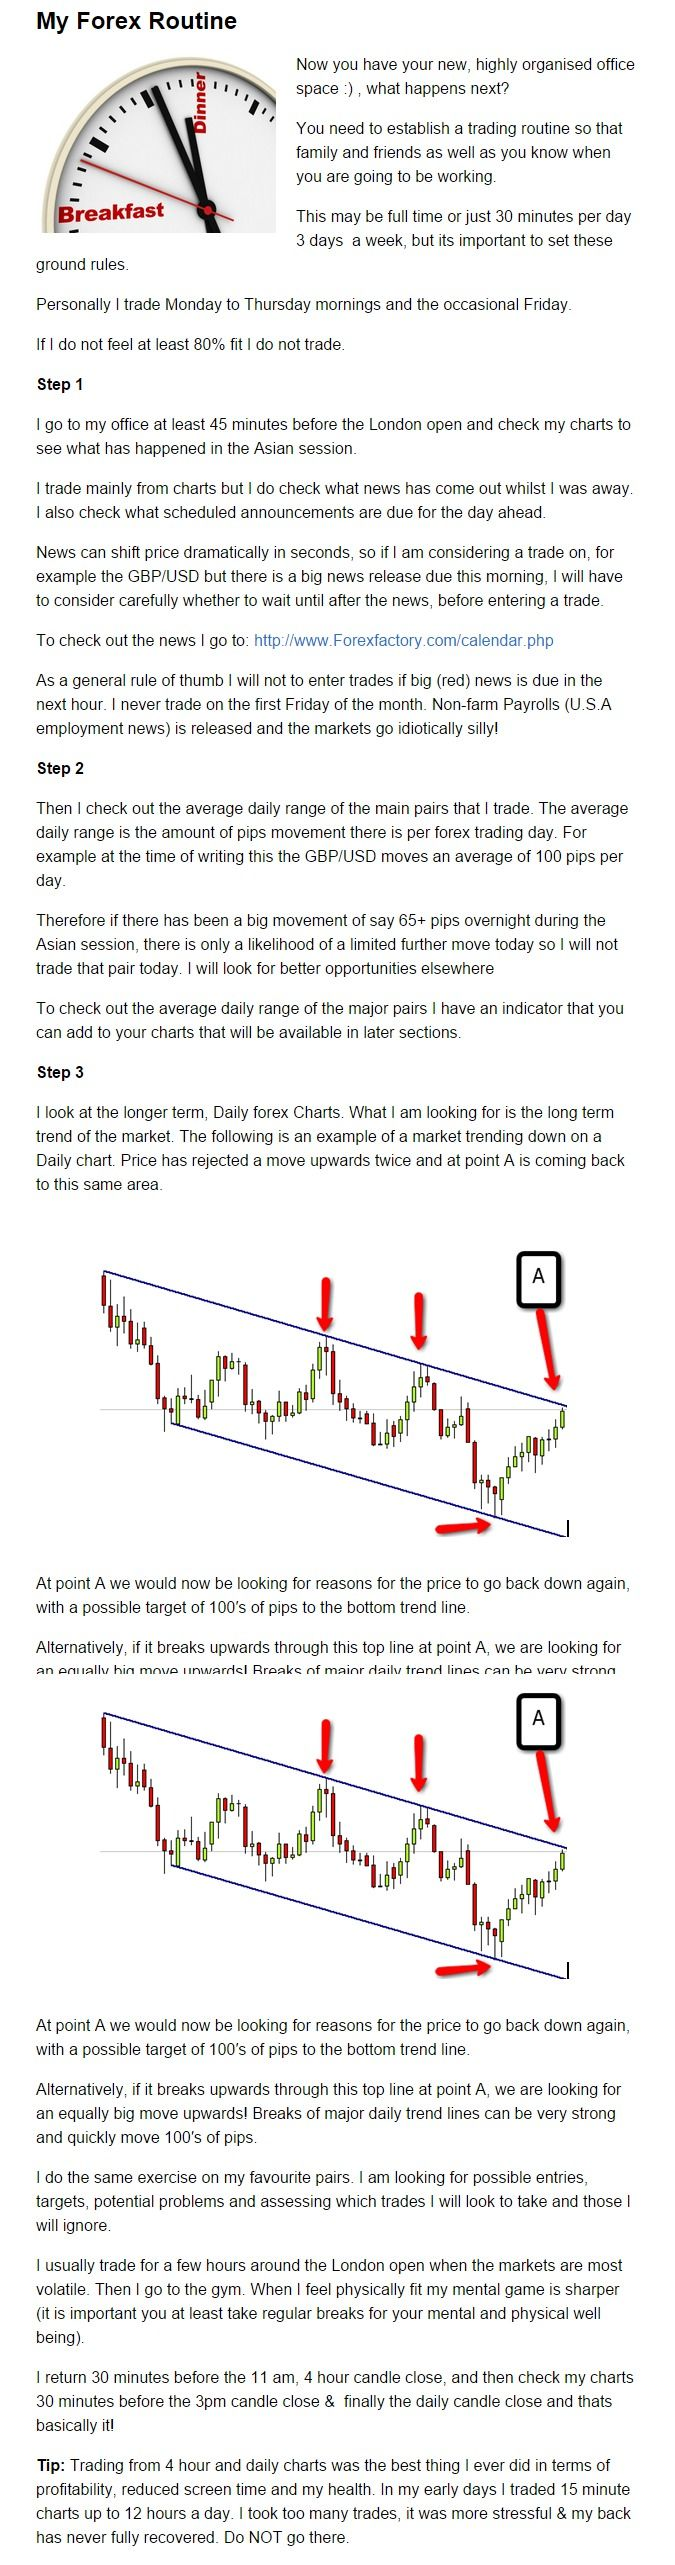 Forex trading daily routine